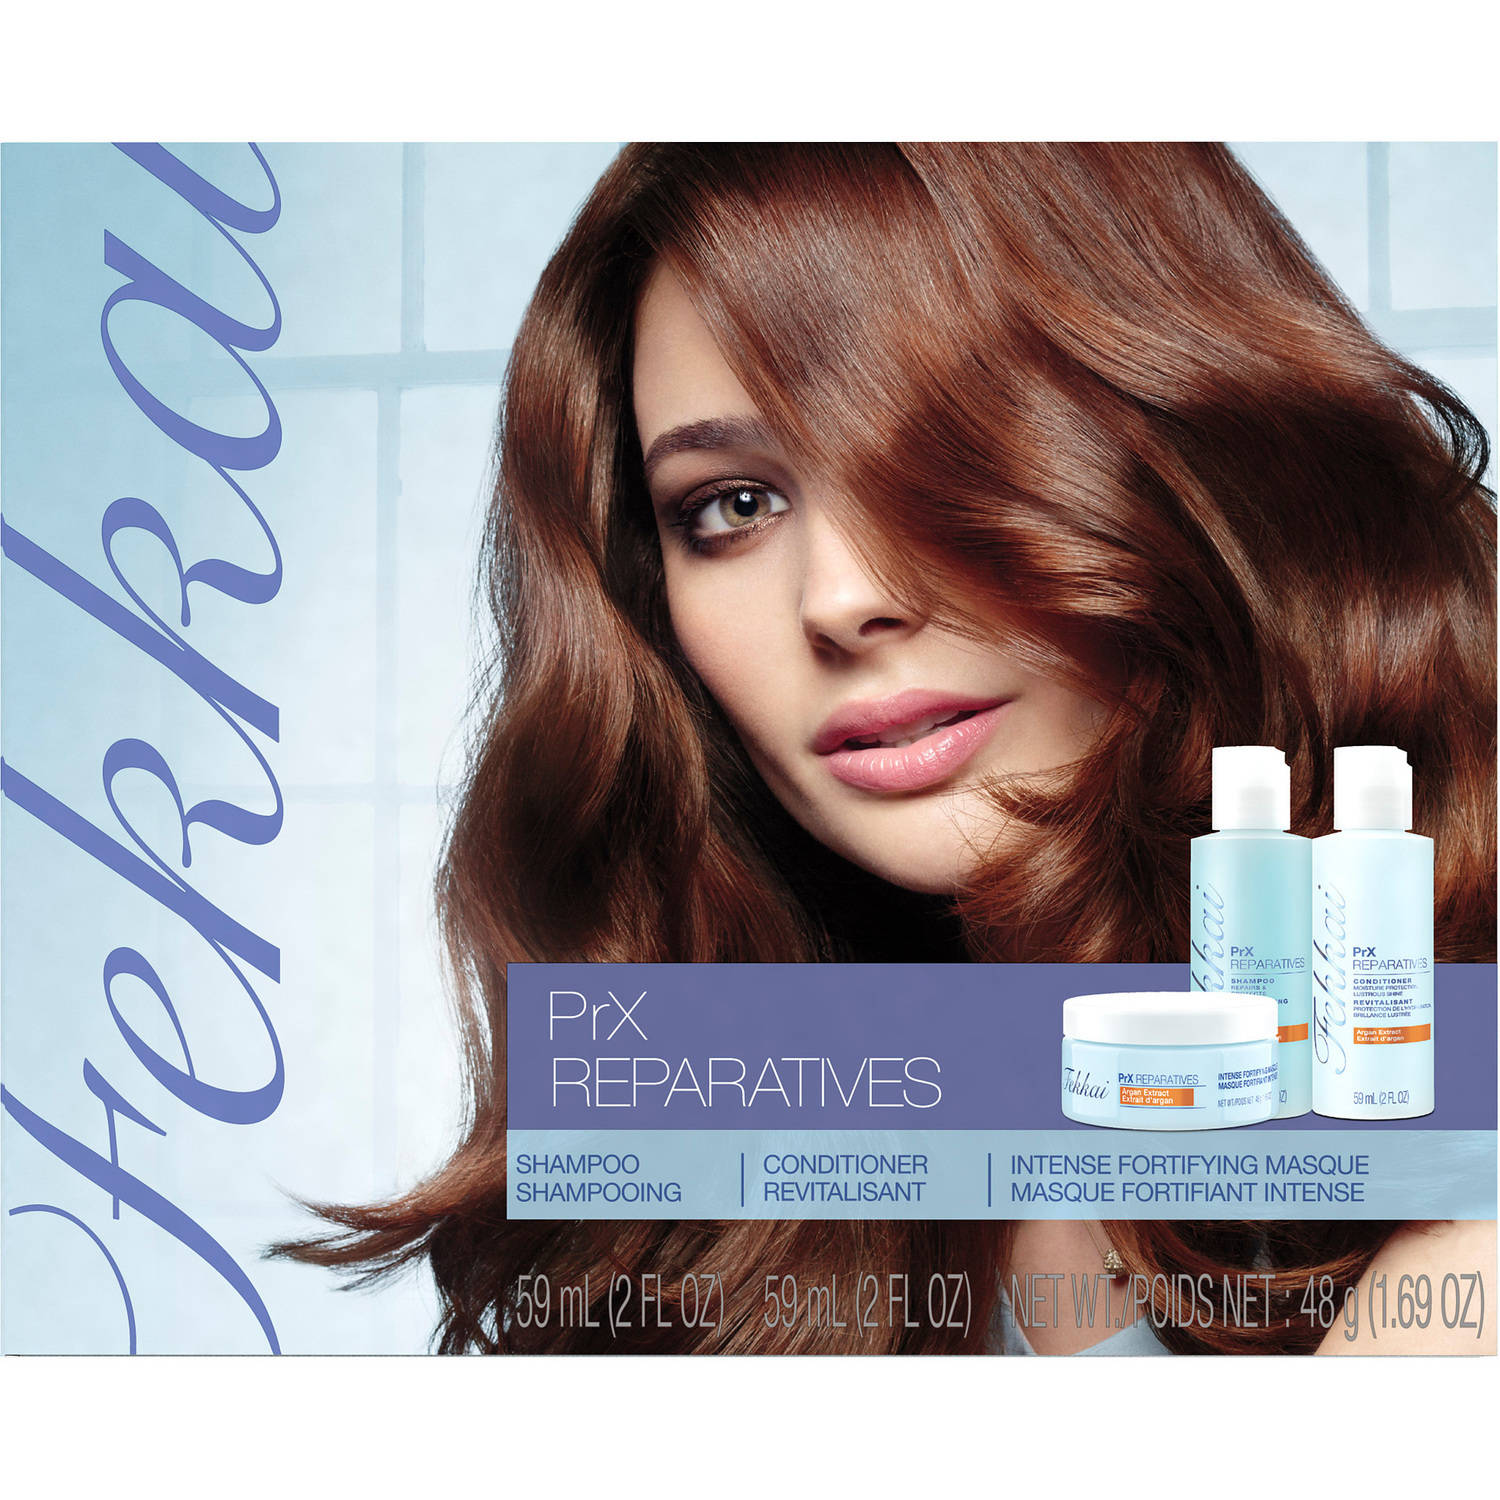 Fekkai PrX Reparatives Starter Kit 3 Piece Kit Includes: 2 oz Shampoo + 2 oz Conditioner + 1.69 oz Intense Fortifying Masque